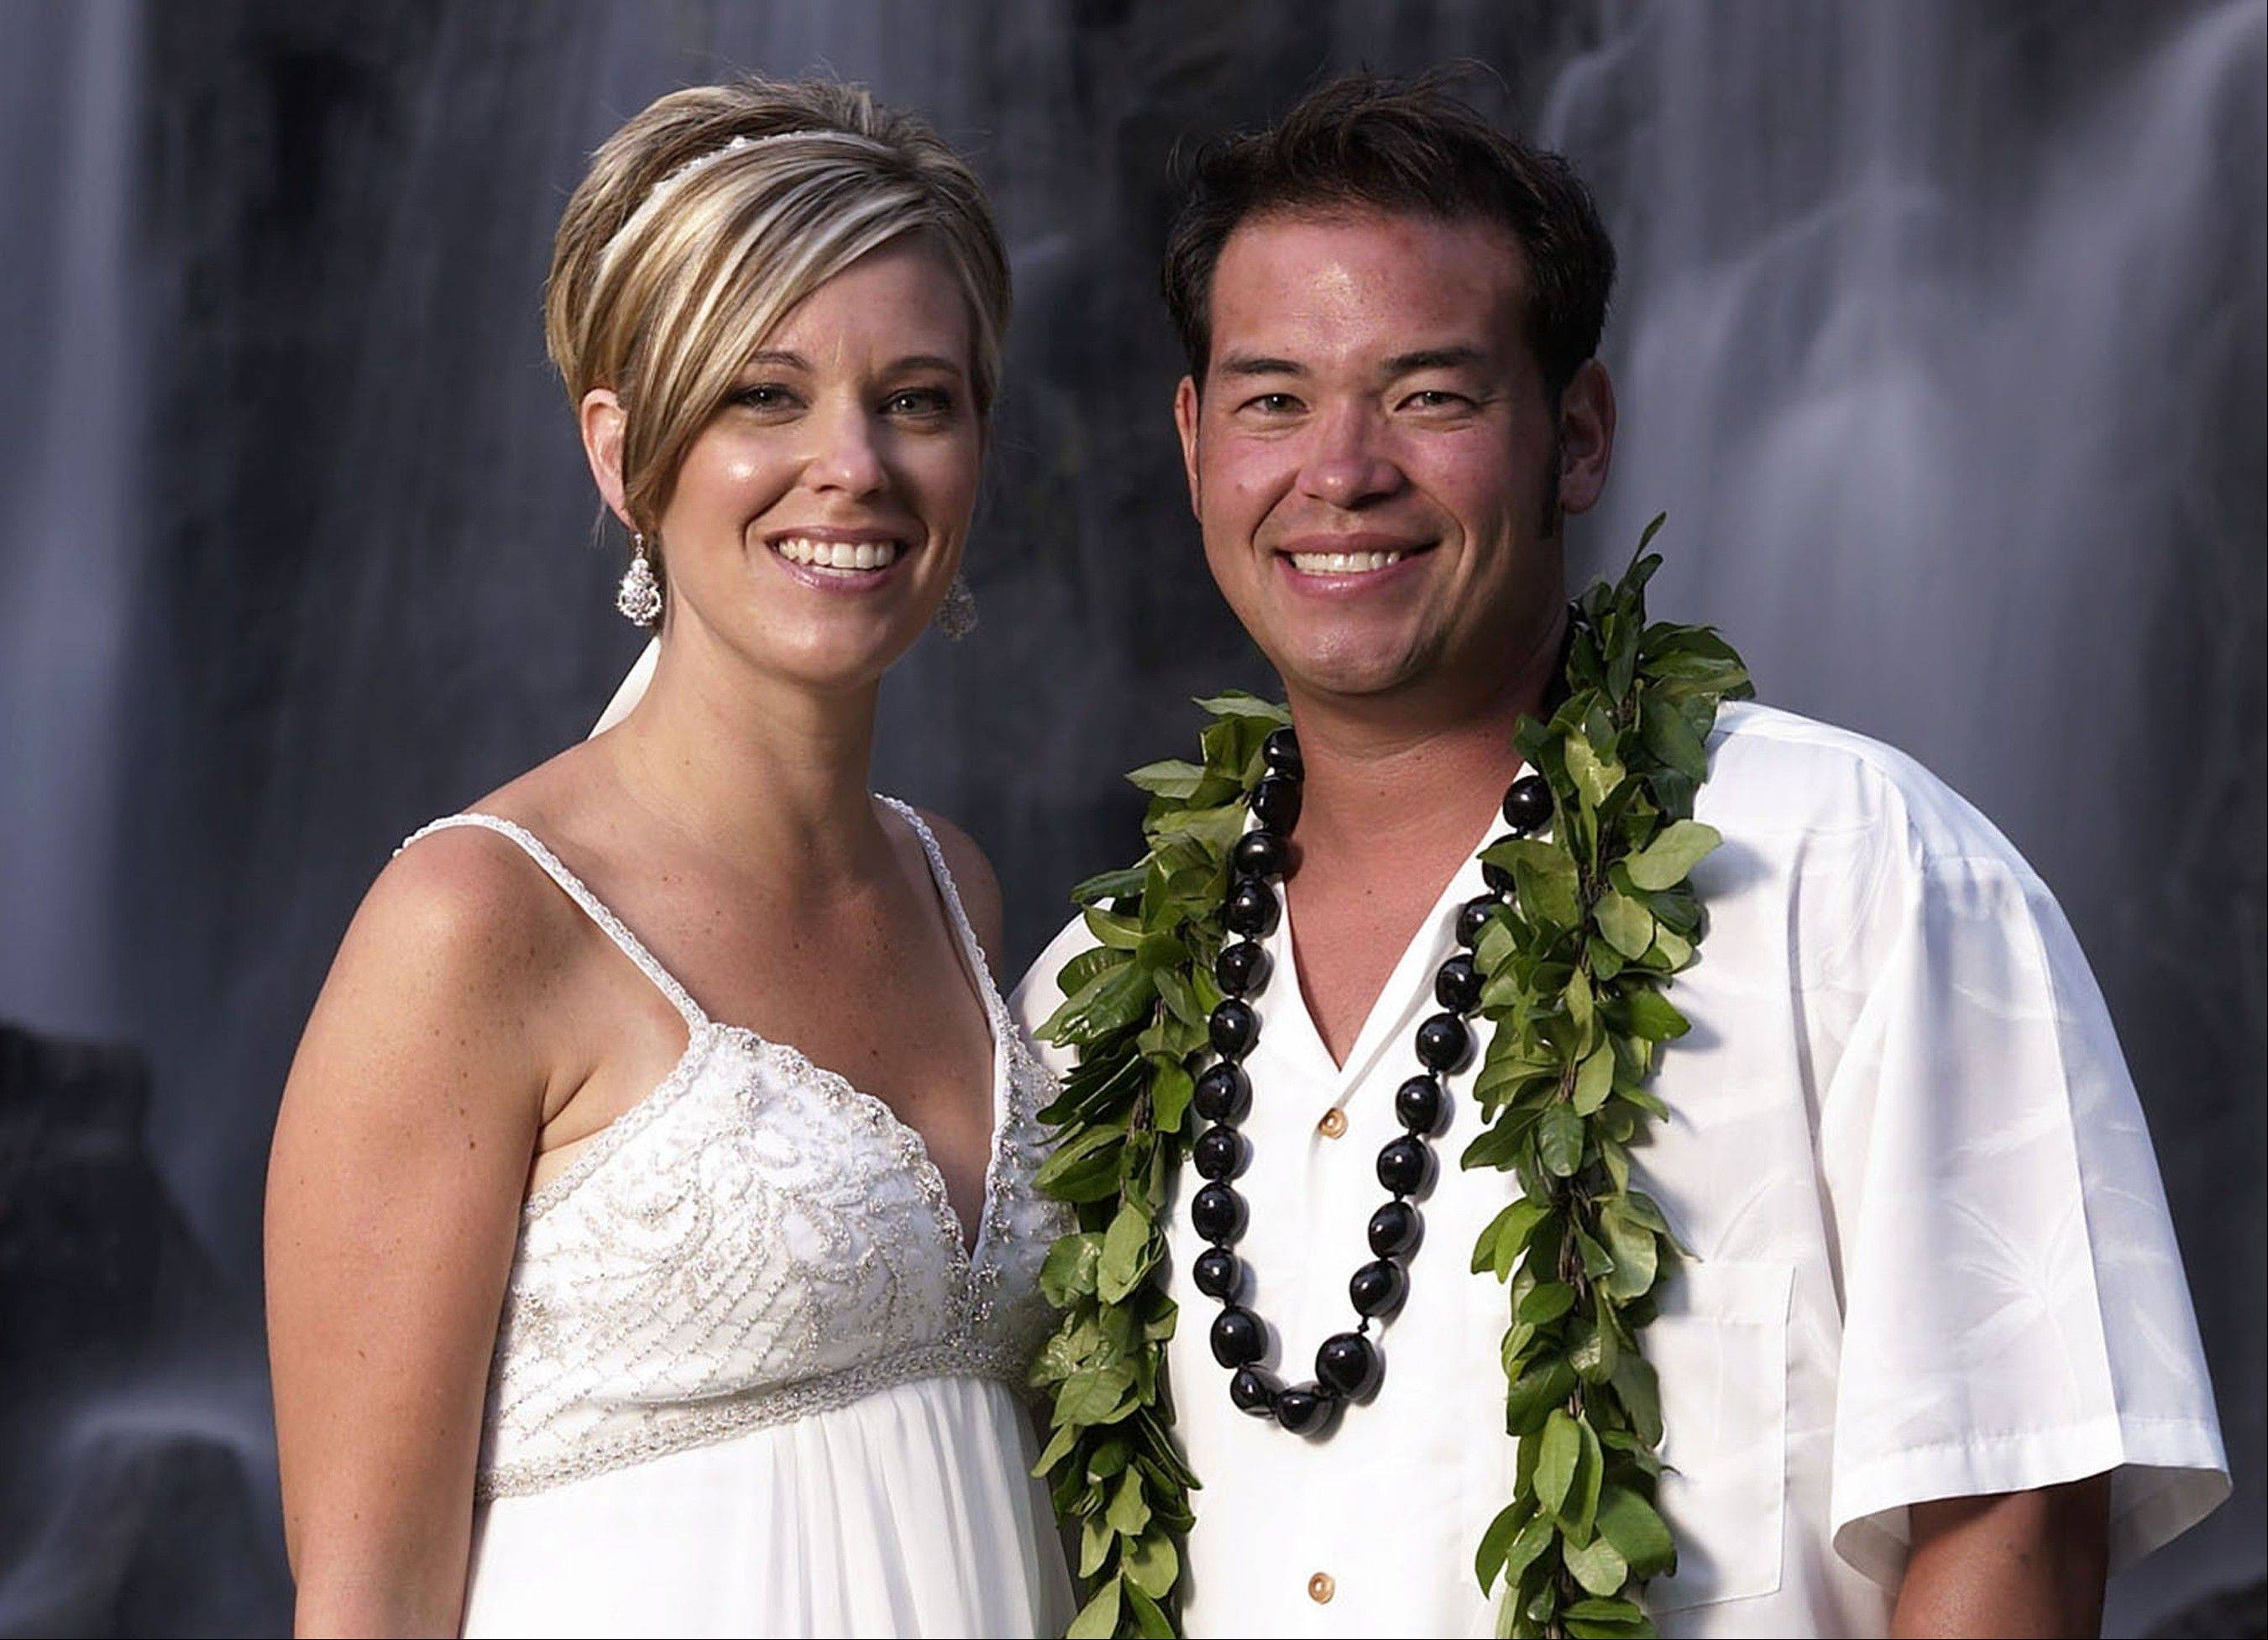 Kate Gosselin has filed a lawsuit accusing her ex-husband, Jon, of stealing her hard drive and hacking into her phone and computer to get material for a tell-all book. The suit was filed Monday in Philadelphia.